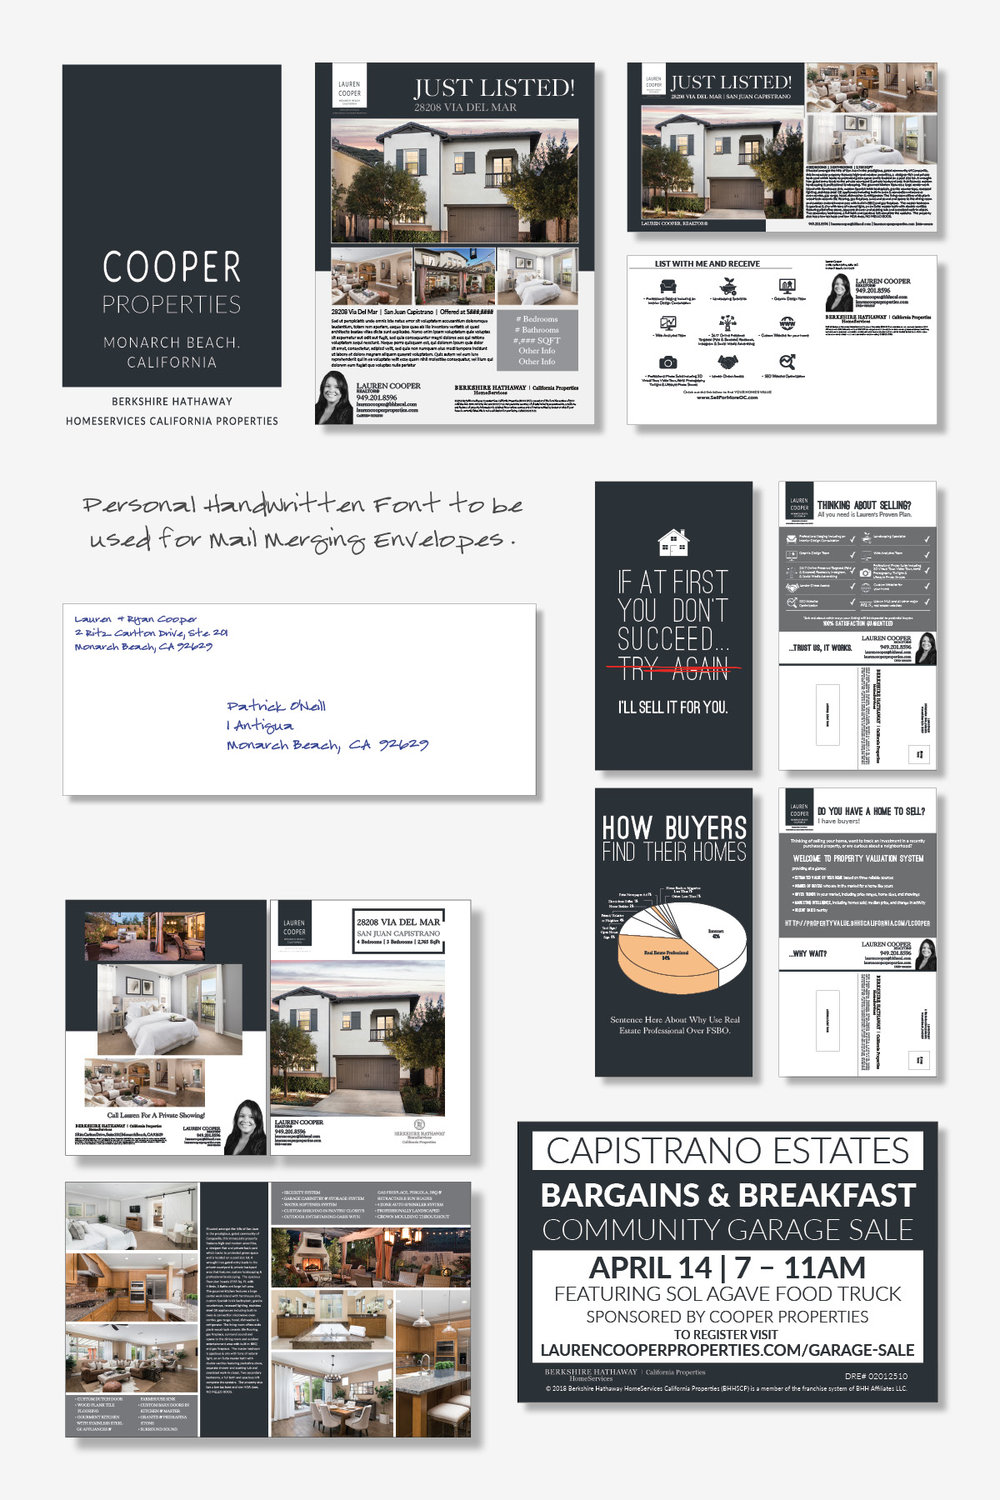 COOPER PROPERTIES   This brand was developed for Lauren and Ryan Cooper, REALTORS® located in Orange County.